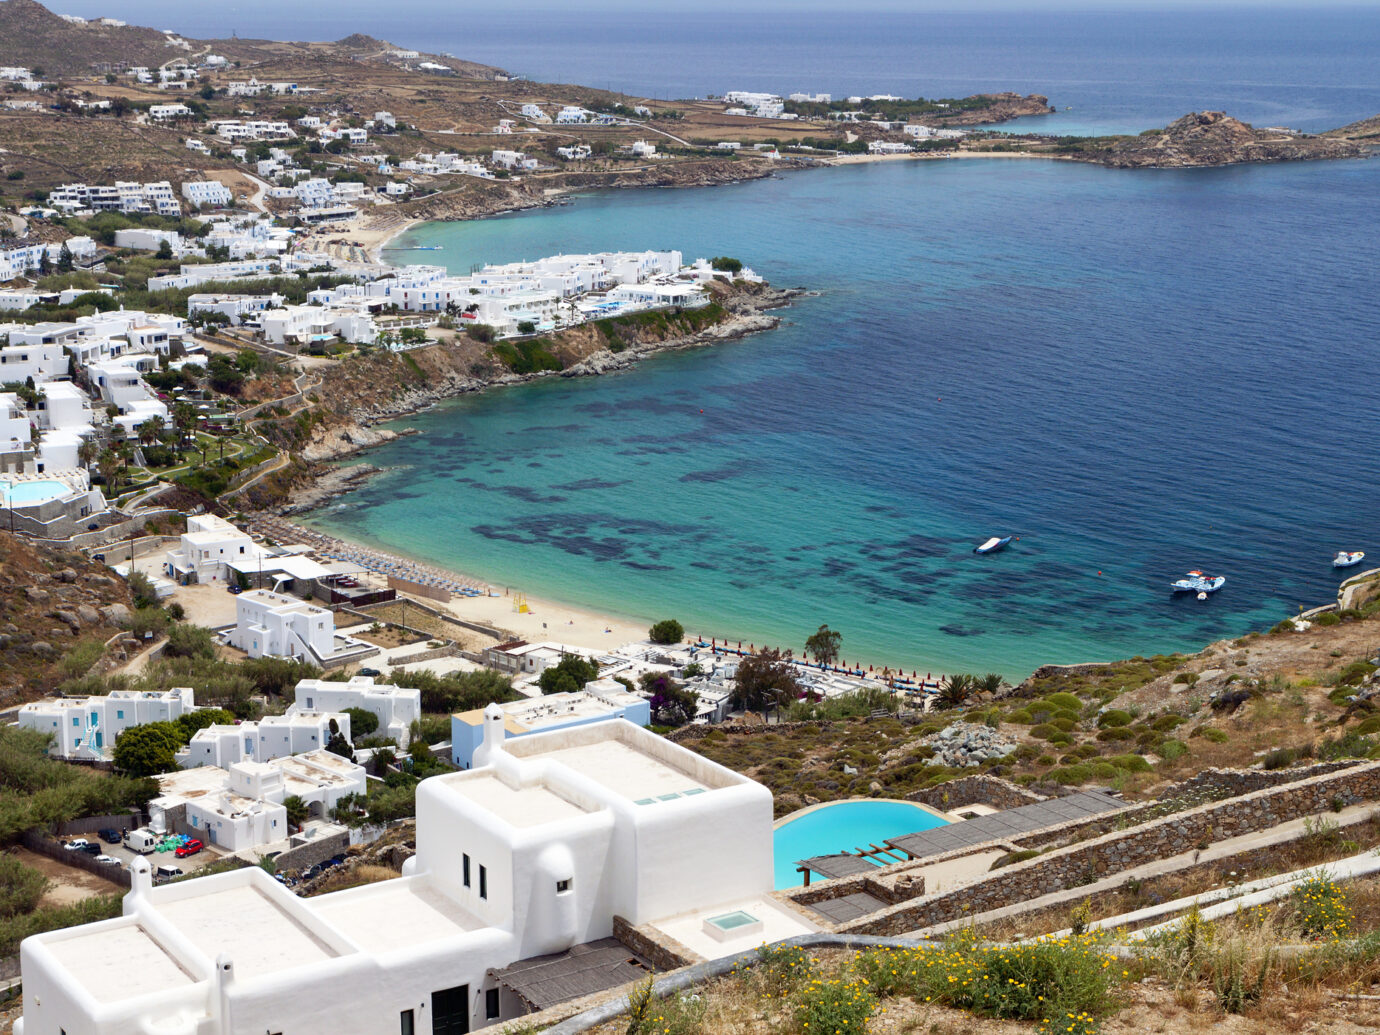 Platis gialos and the famous Psarou beach at Mykonos island in Greece